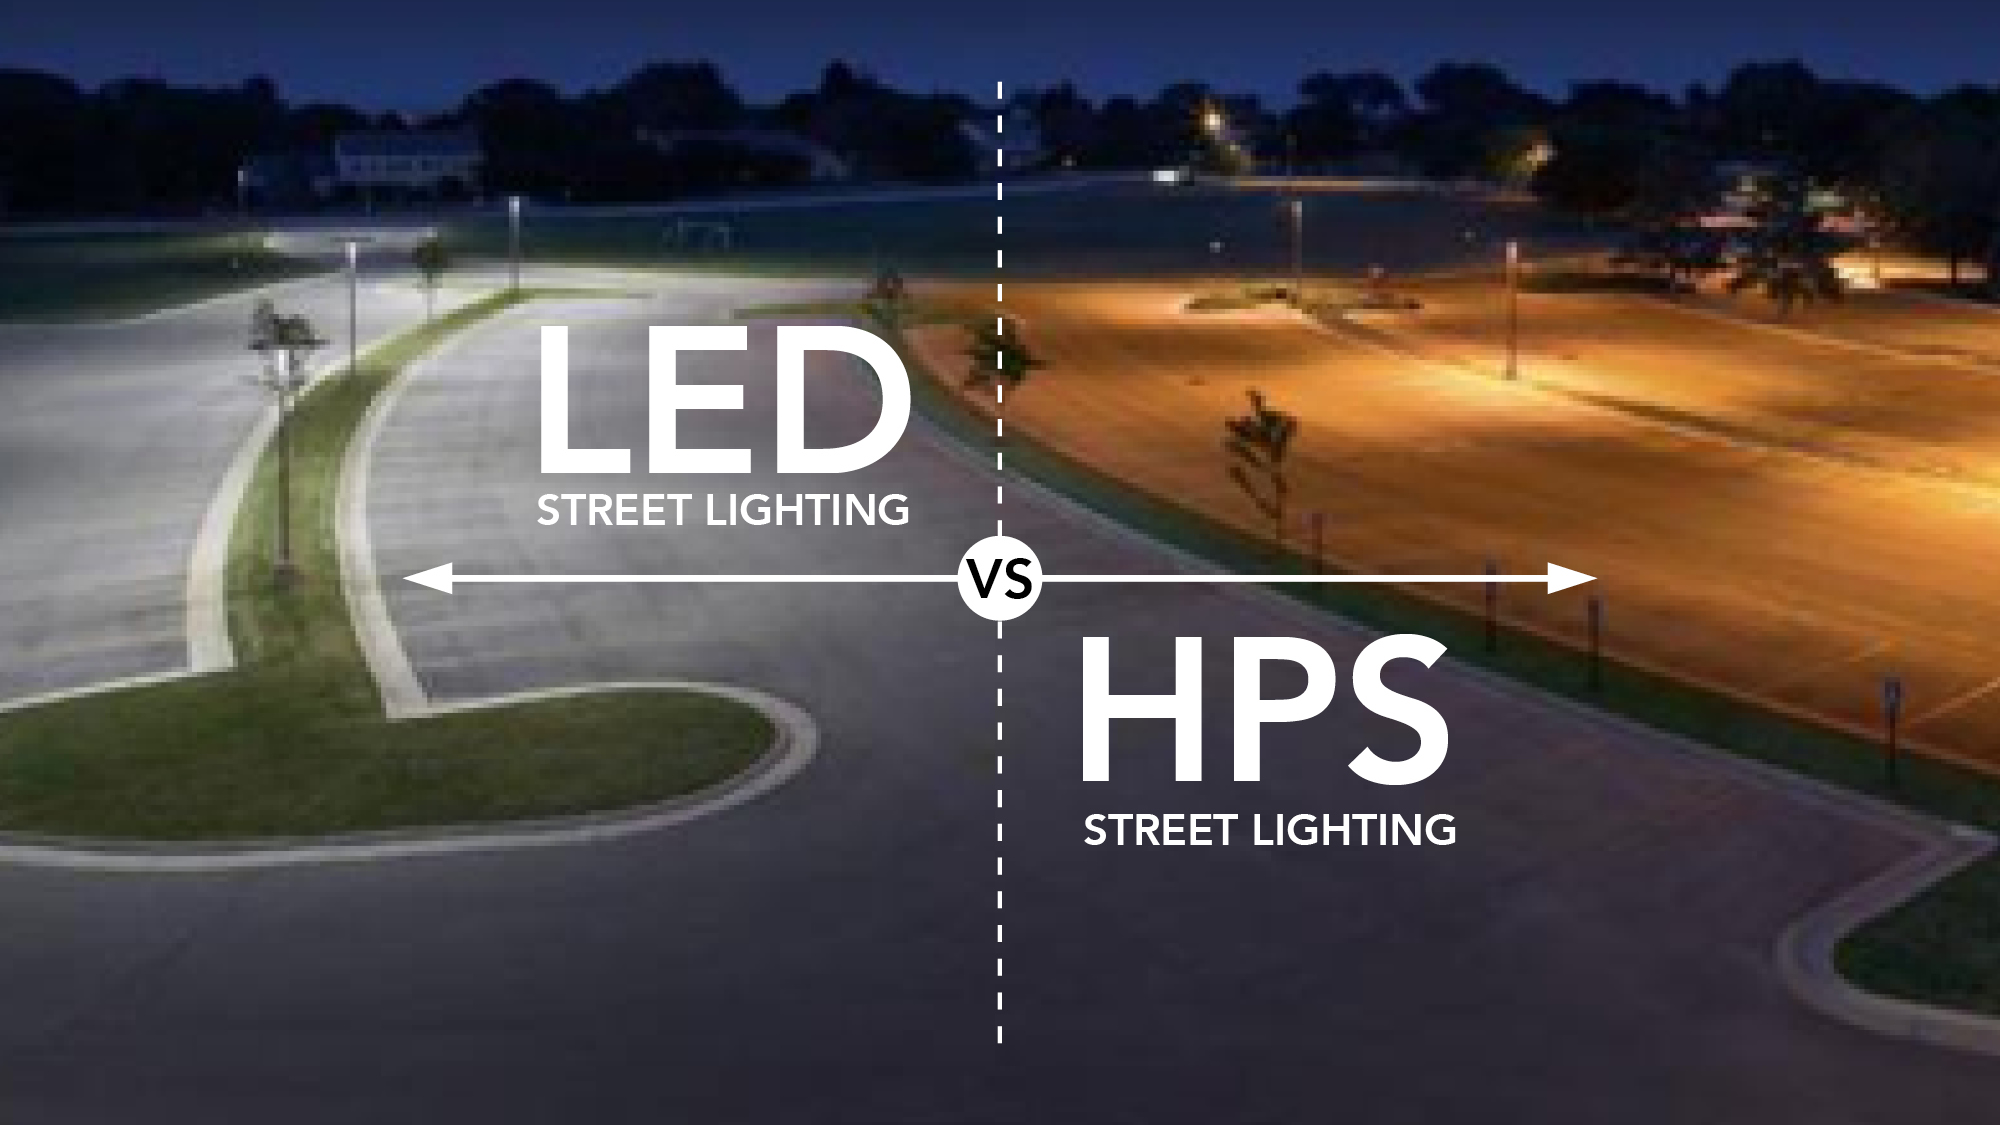 LED lights efficiency